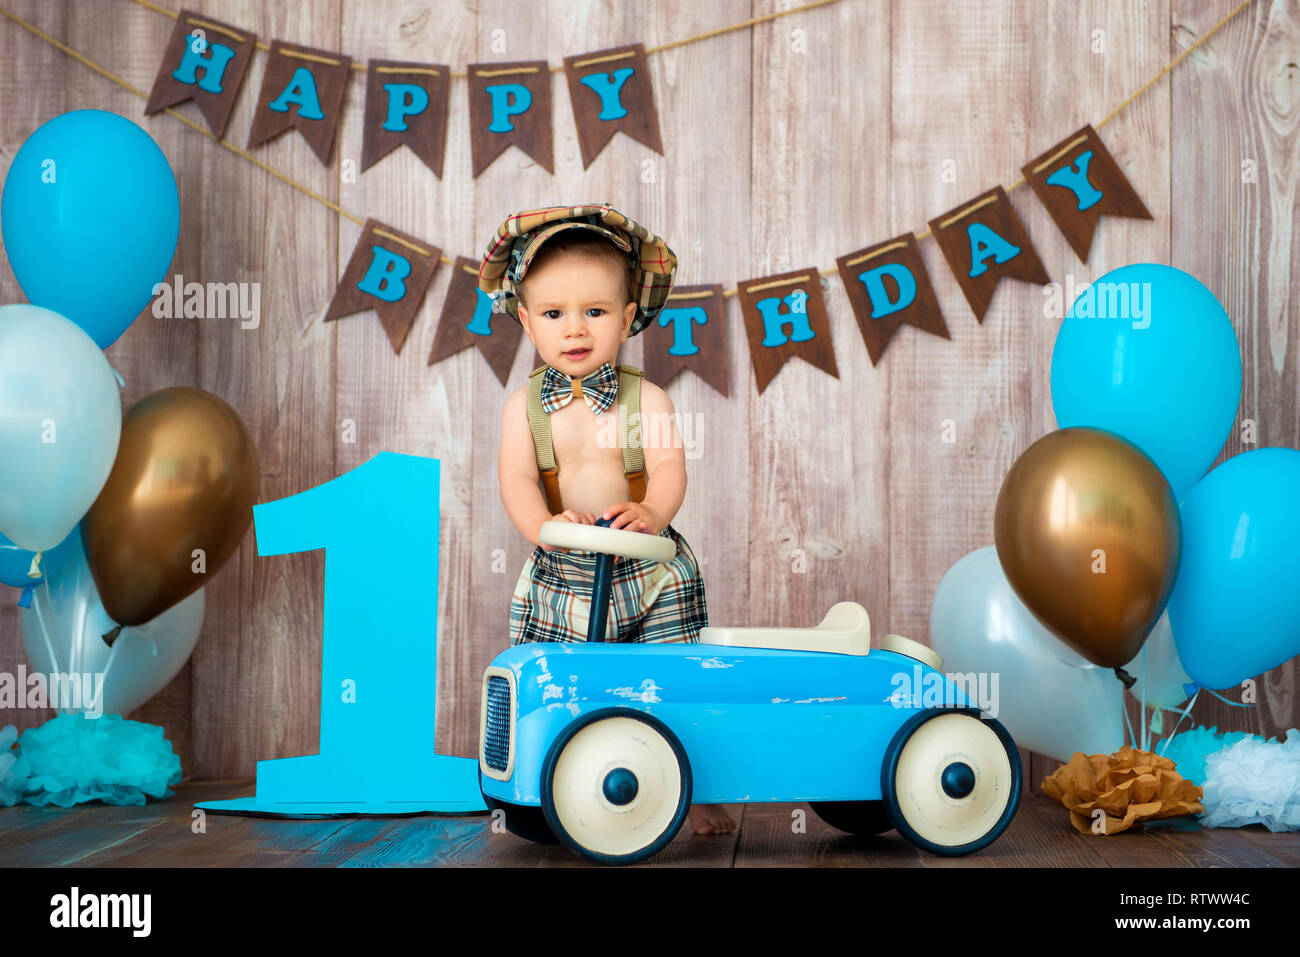 Little Boy Kid Gentleman In Retro Costume With Suspenders And Cap Is Sitting On A Wooden Car Childrens Party Balloons Happy Birthday 1 Year